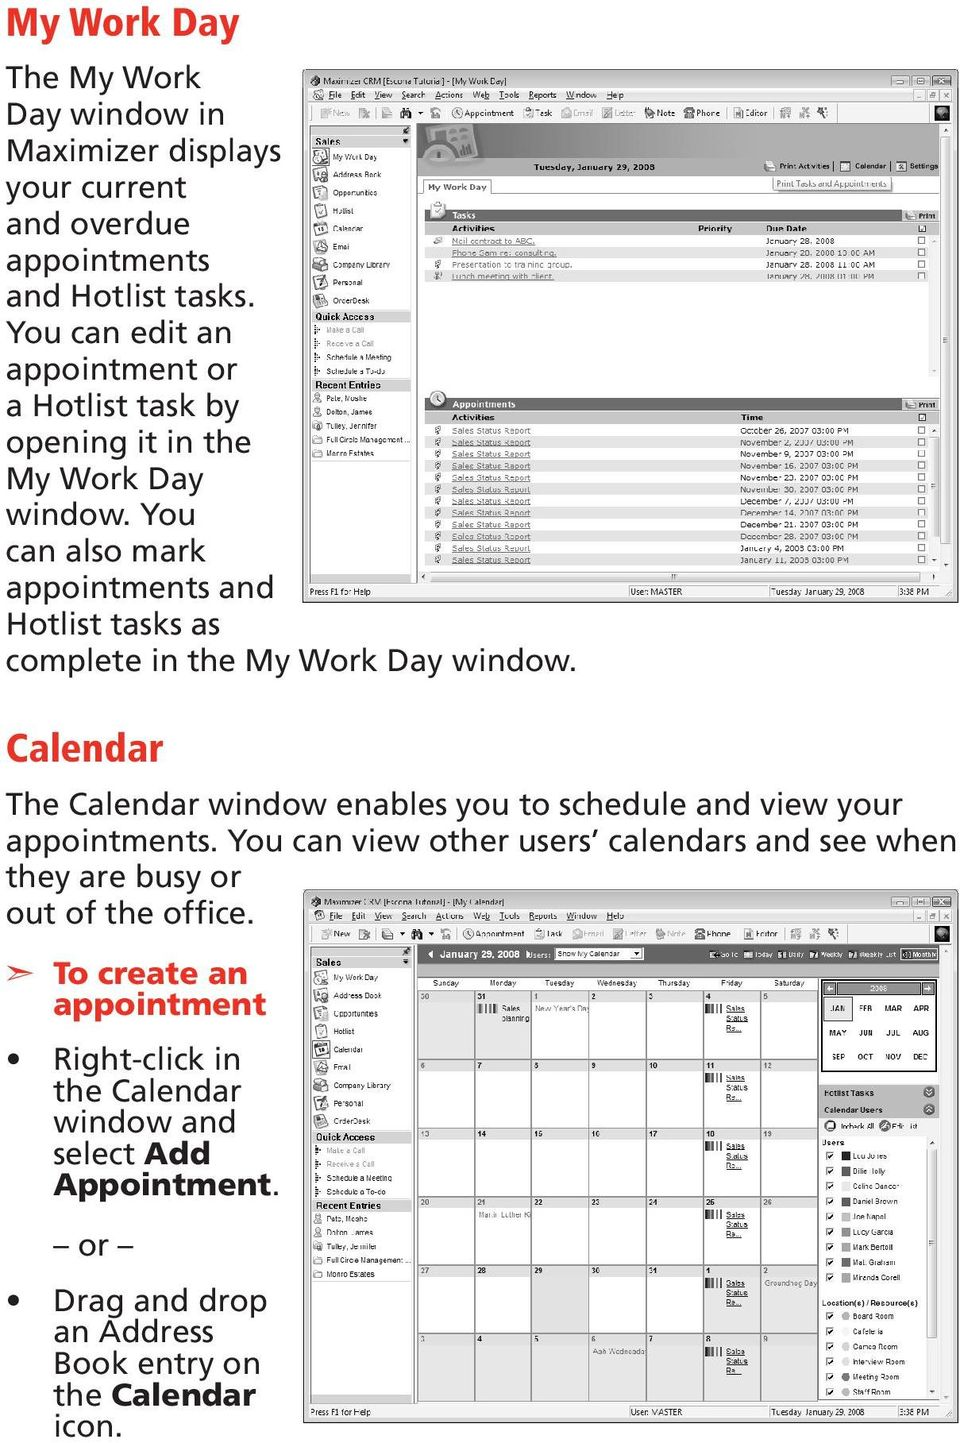 You can also mark appointments and Hotlist tasks as complete in the My Work Day window.